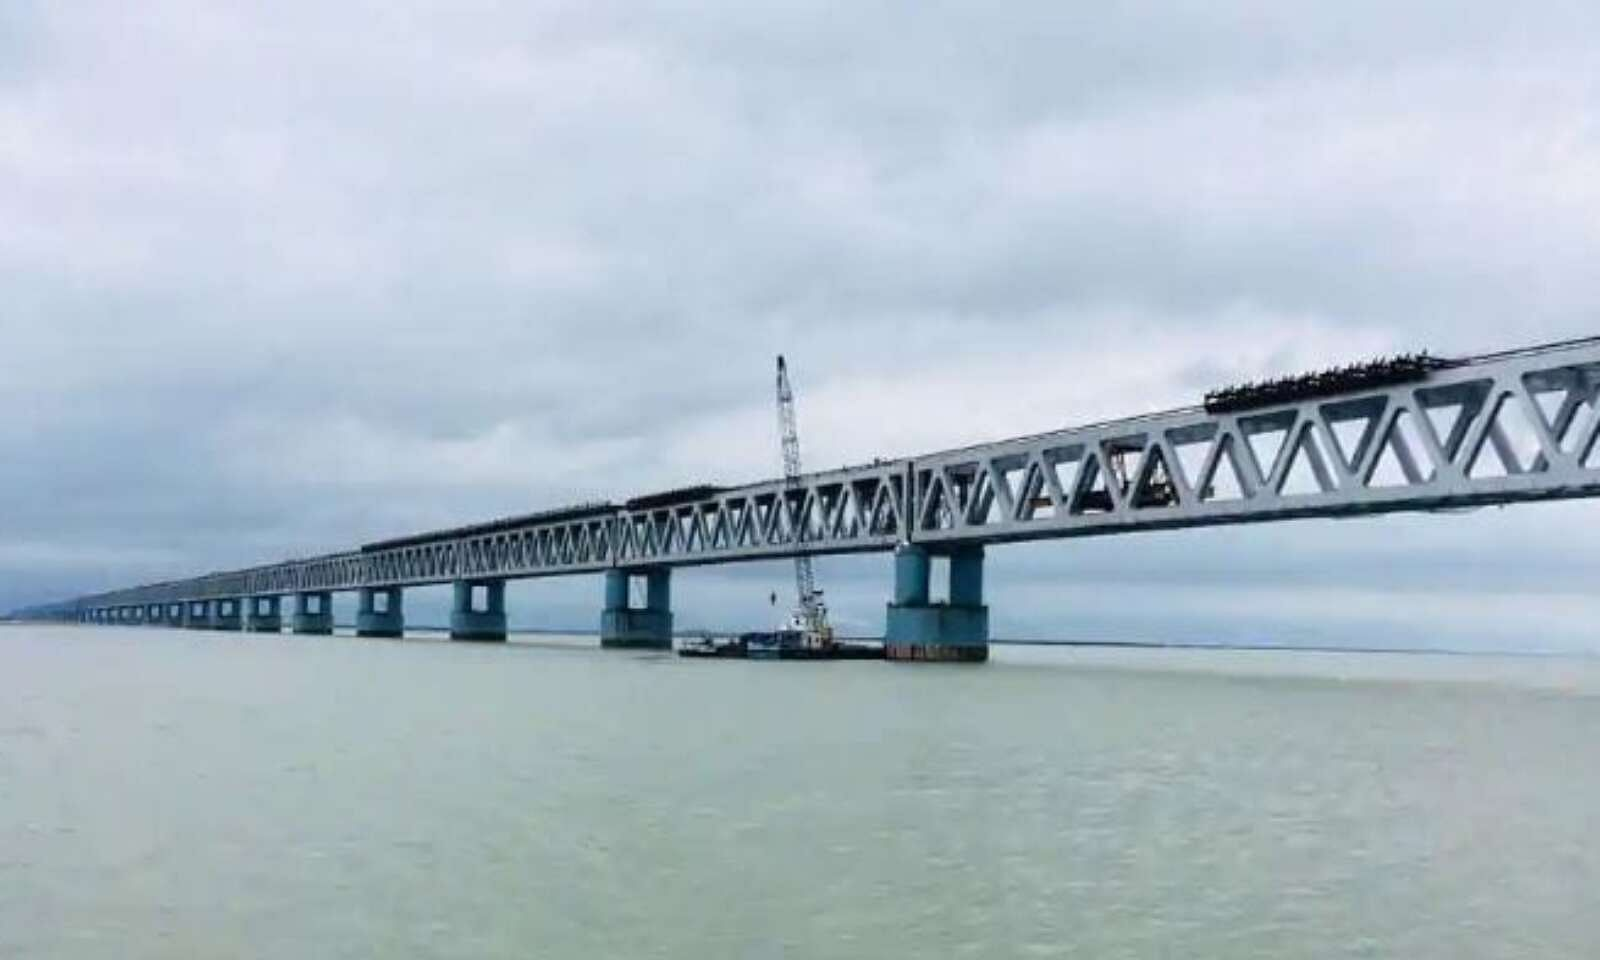 PM Narendra Modi inaugurated 'Maitri Setu' bridge between India, Bangladesh and laid foundation stone of infrastructure projects in Tripura.